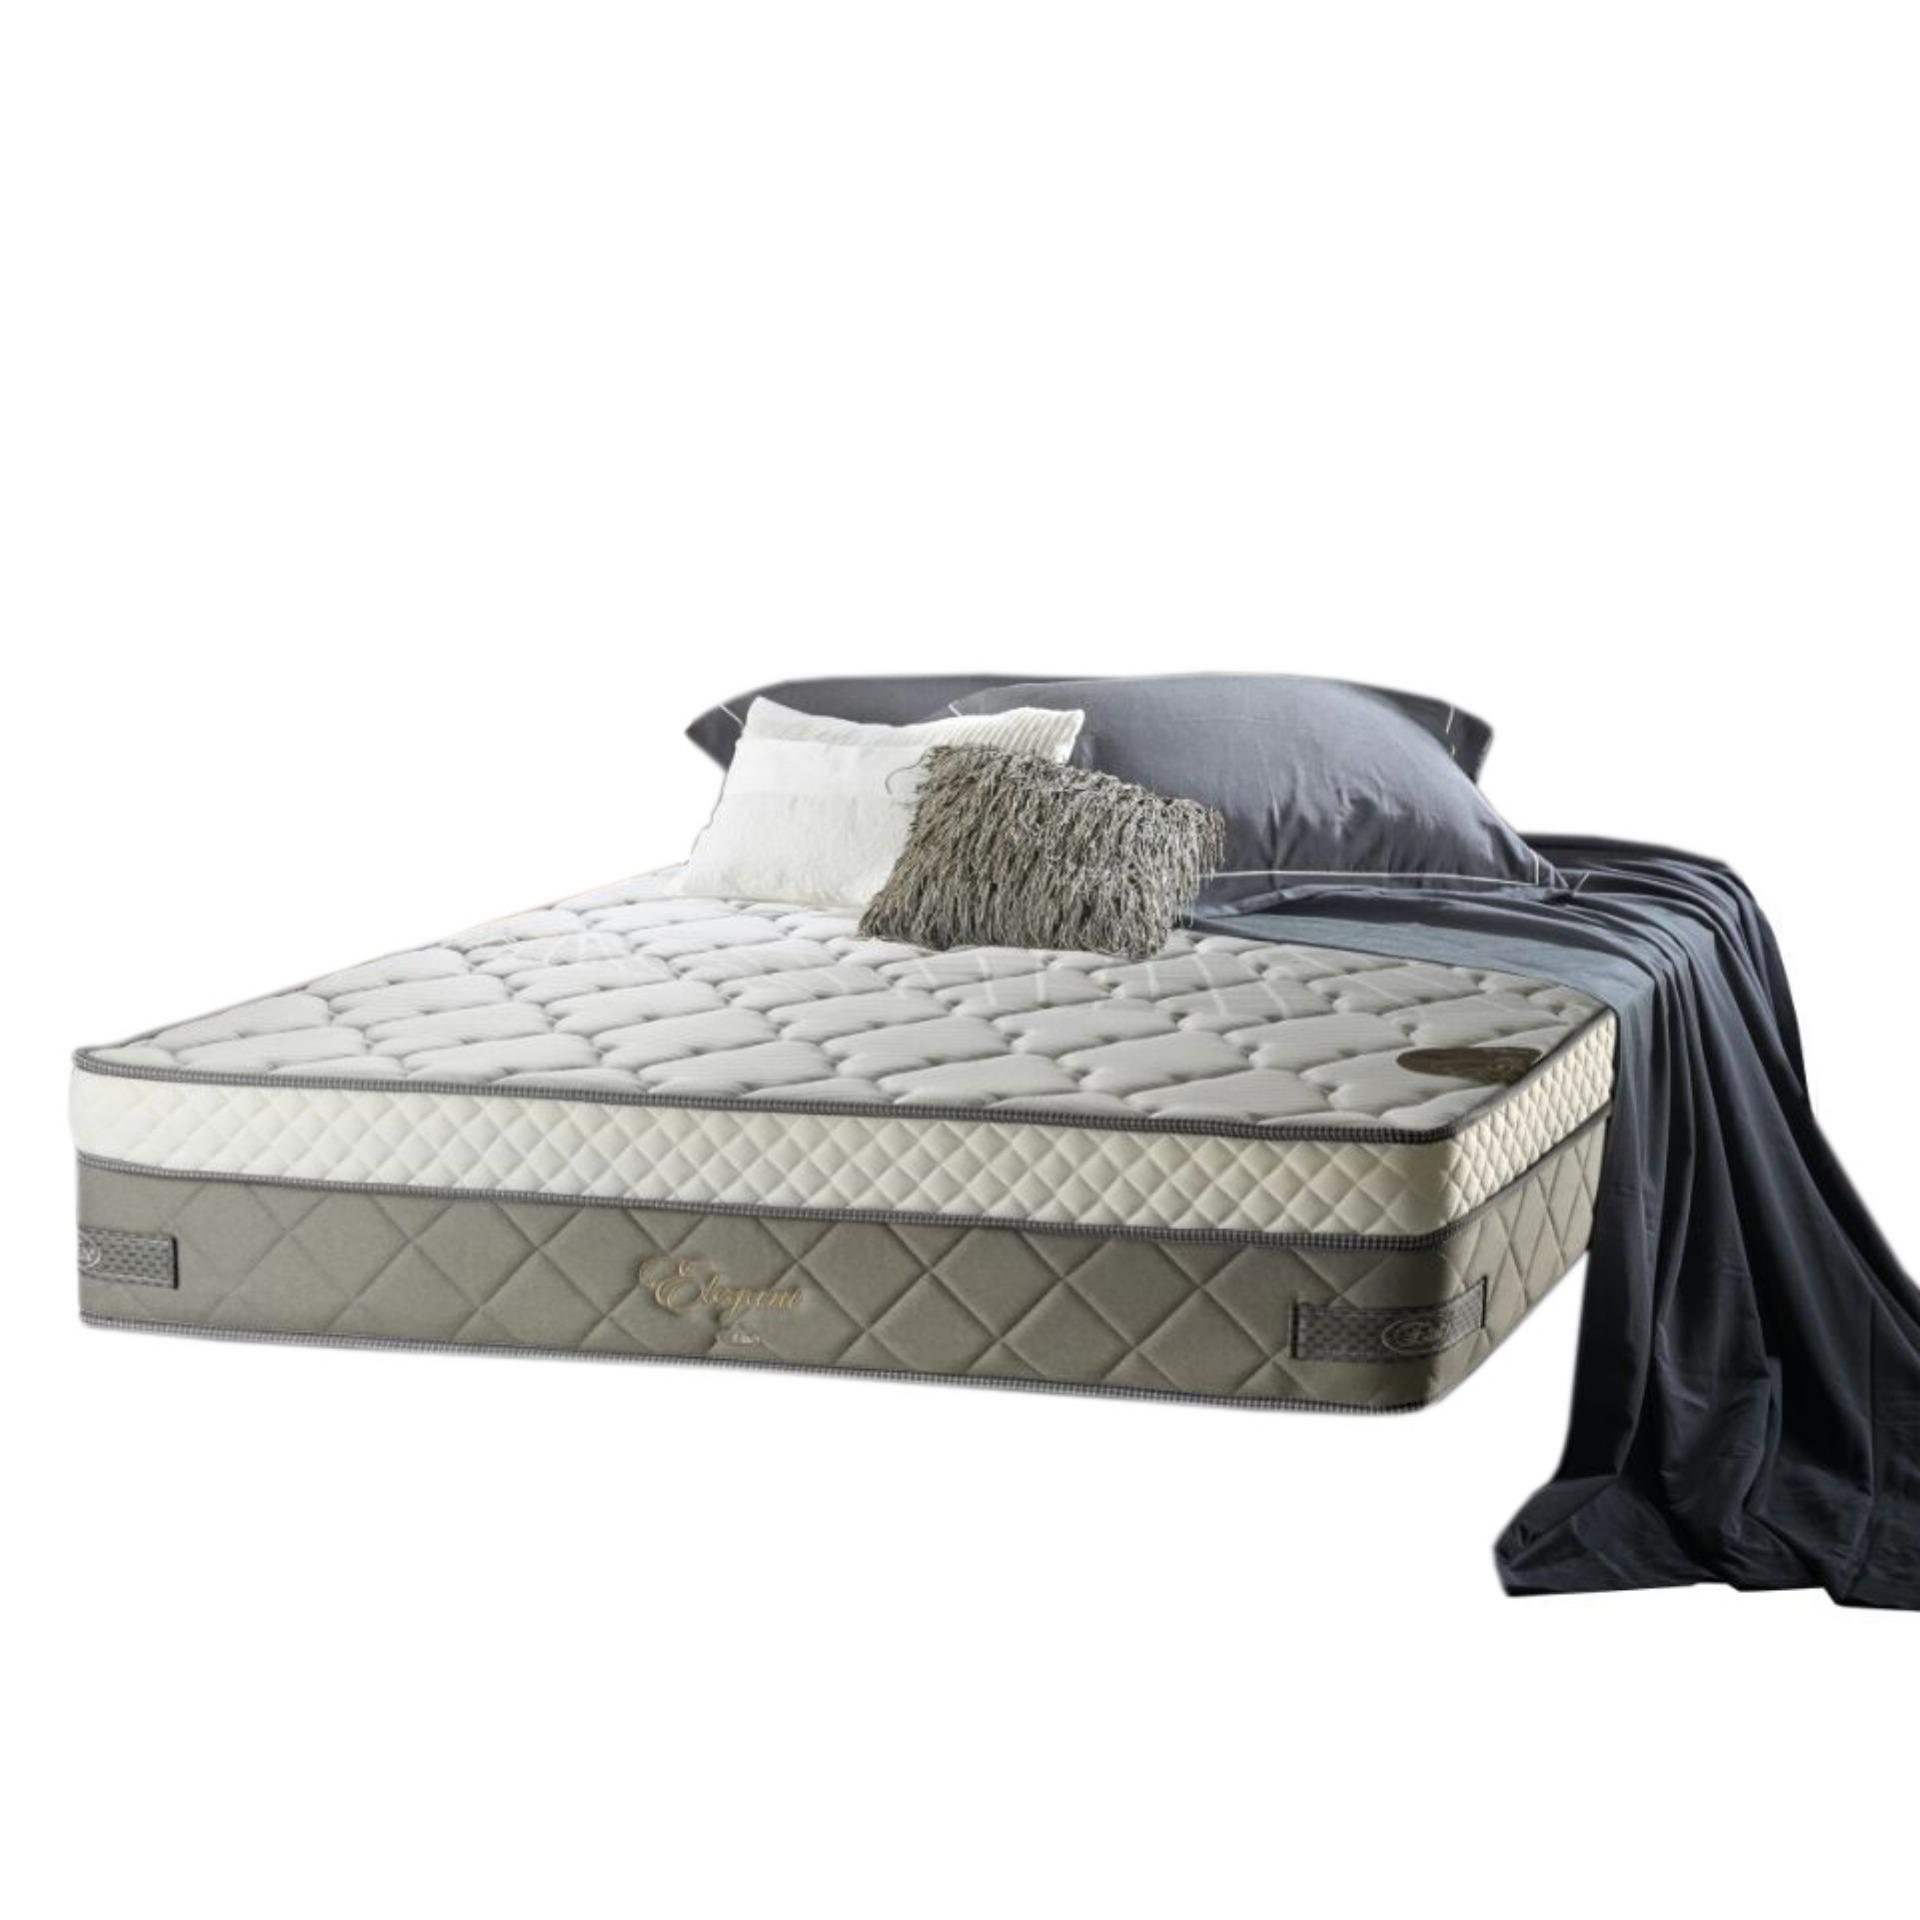 Elite Springbed Elegant Everflex Spring With Plush Top Size 160 x 200 - Mattress Only - Khusus Jabodetabek